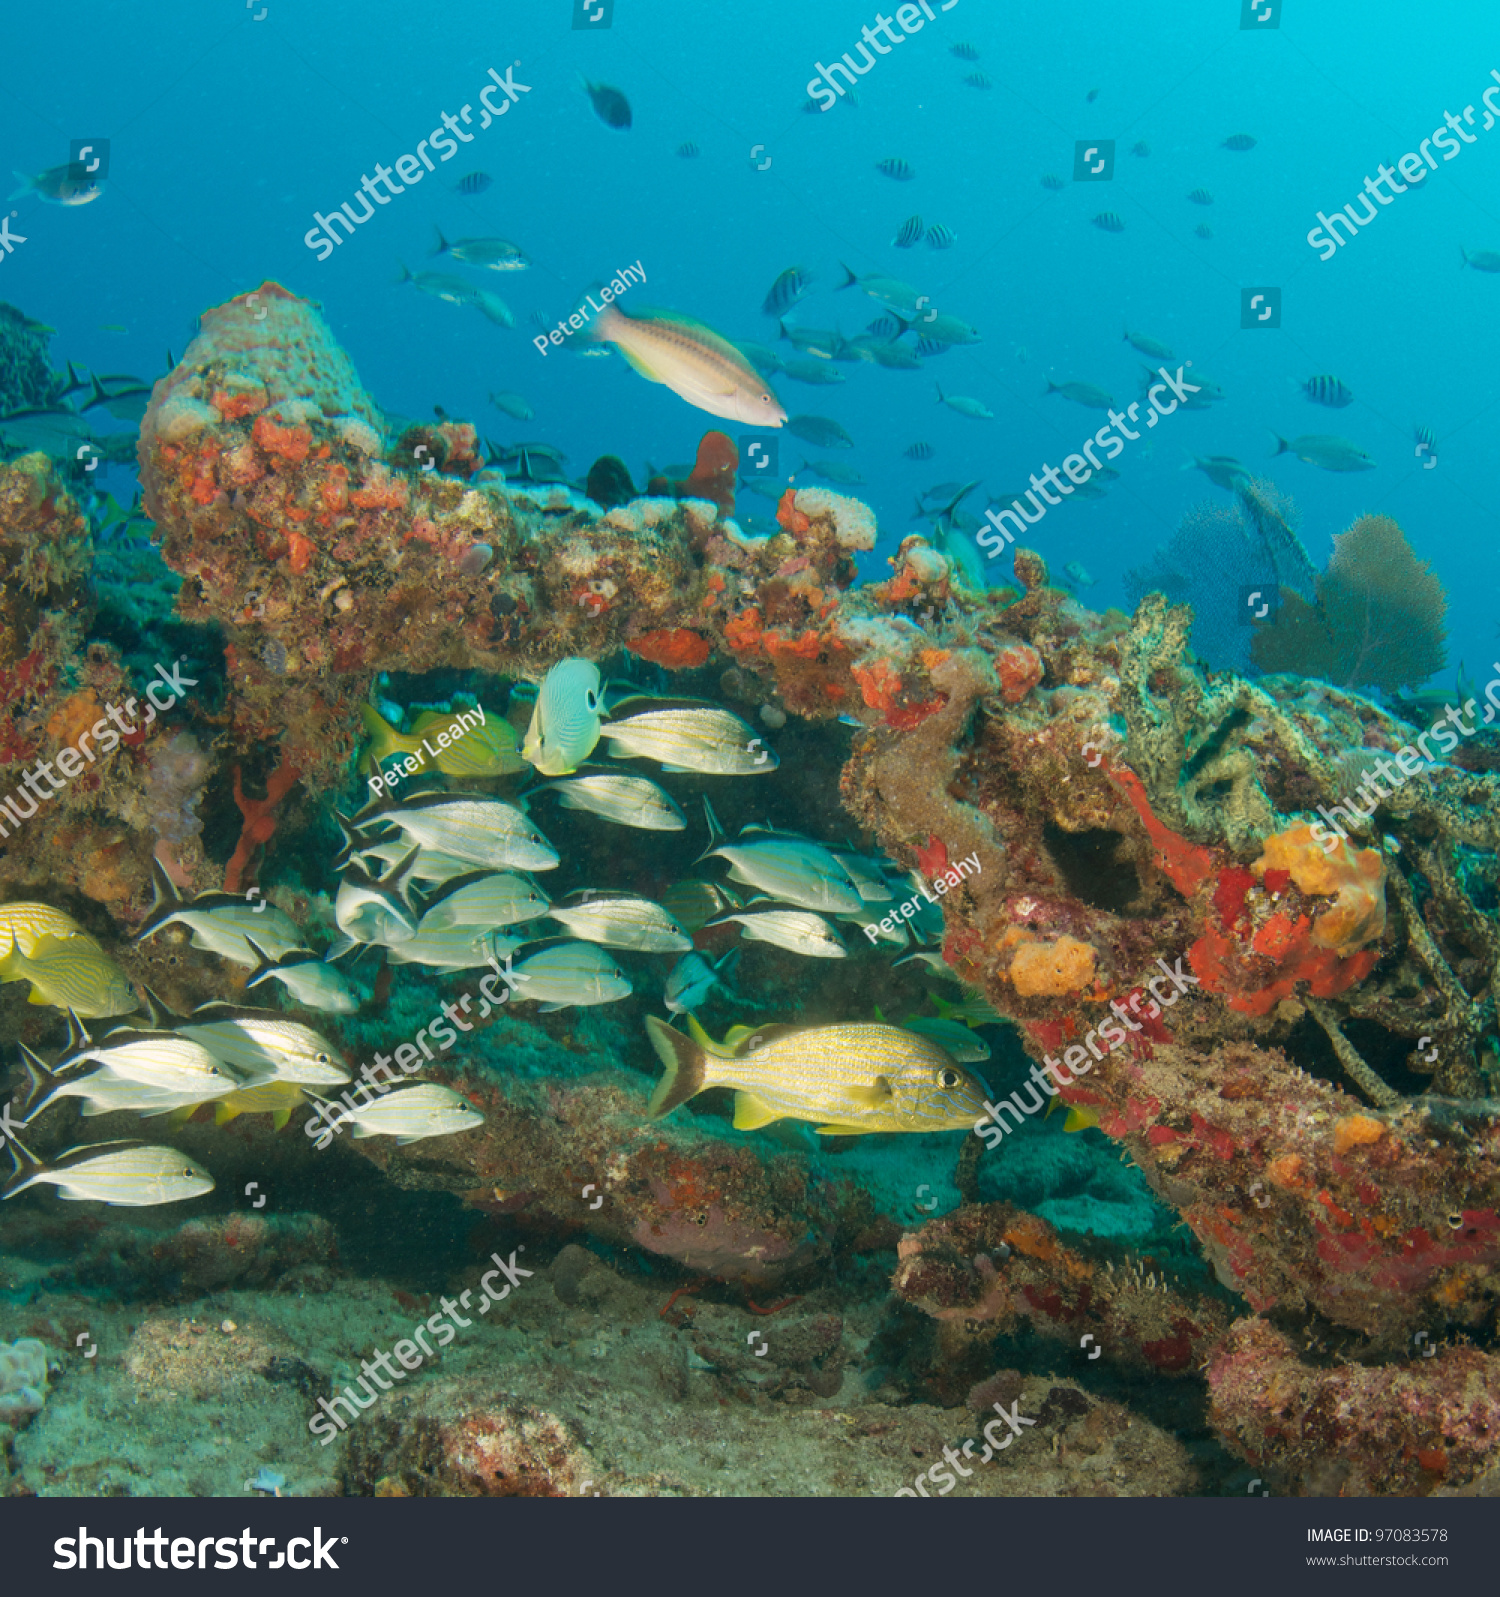 Colorful Fish On Tropical Coral Reef Stock Photo 97083578 - Shutterstock